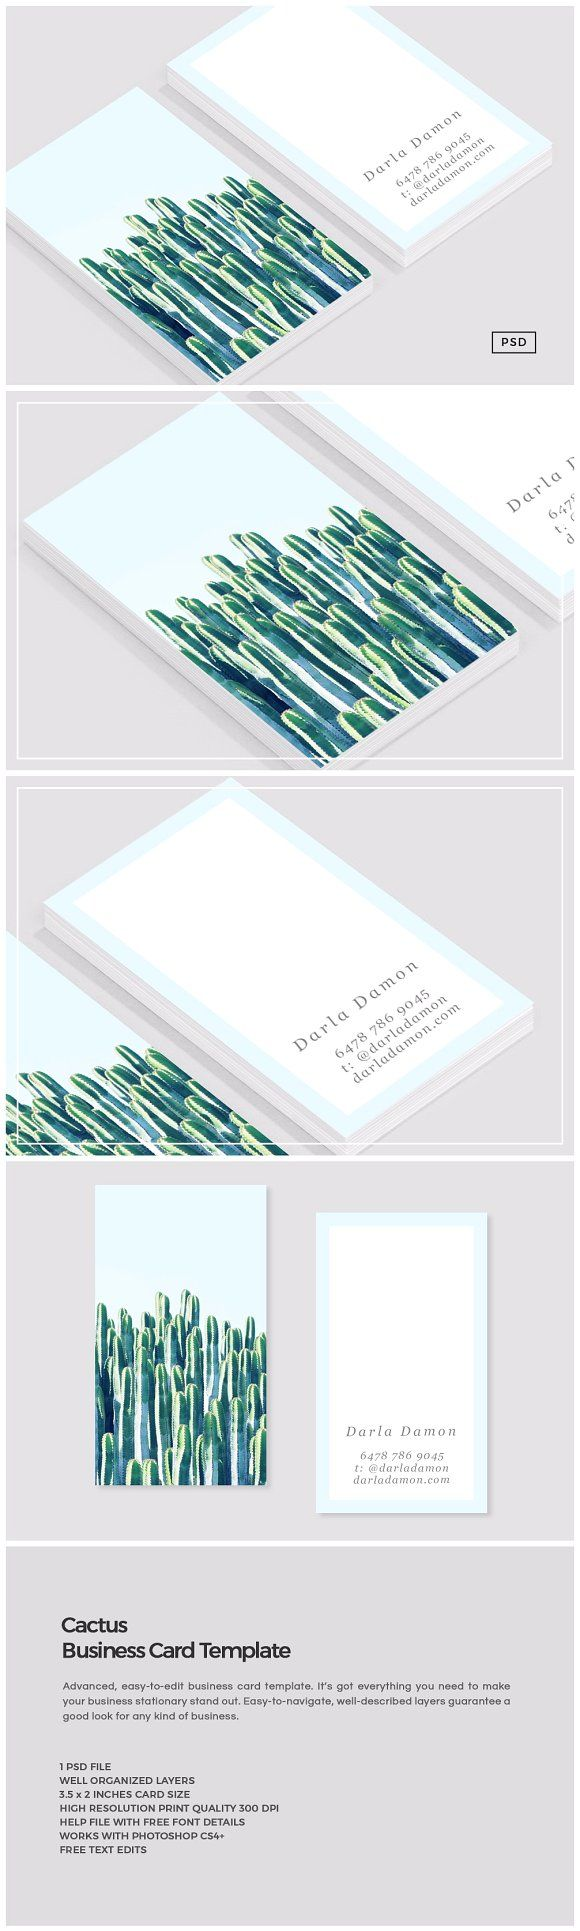 Cactus Business Card Template | Card templates, Business cards and Cacti